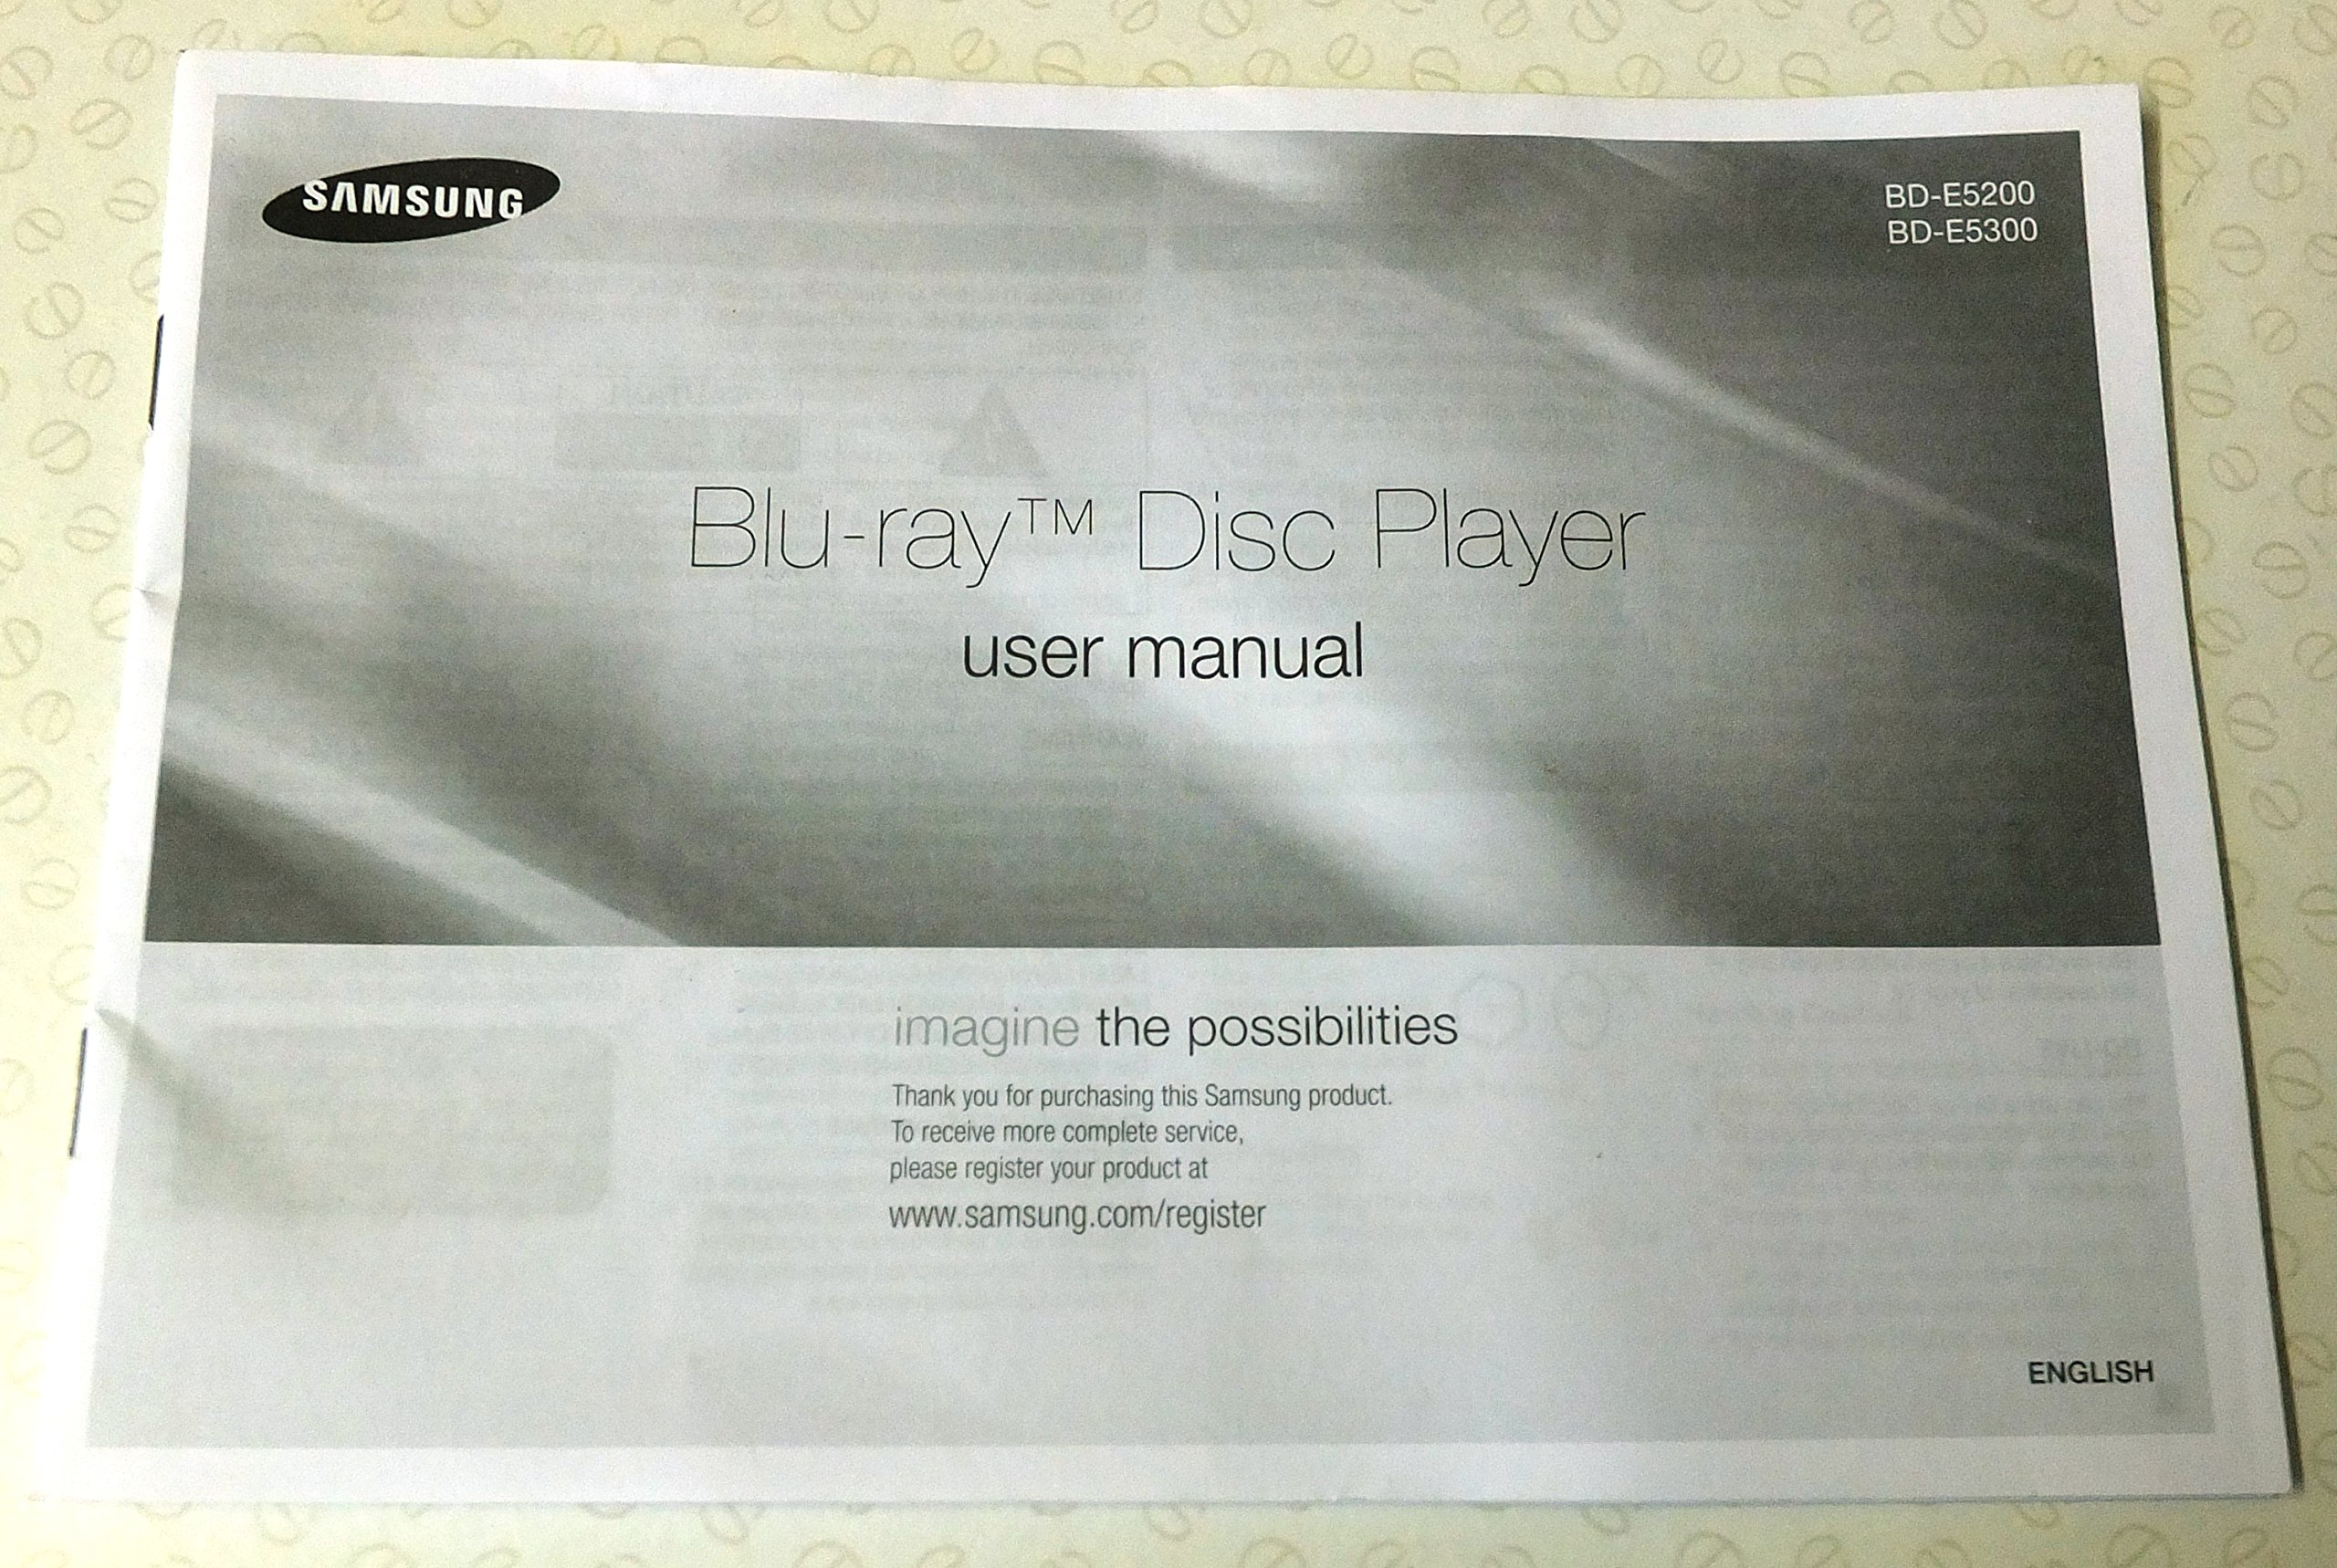 Samsung blu-ray disc player models bd-e5200 and bd-e5300. User.